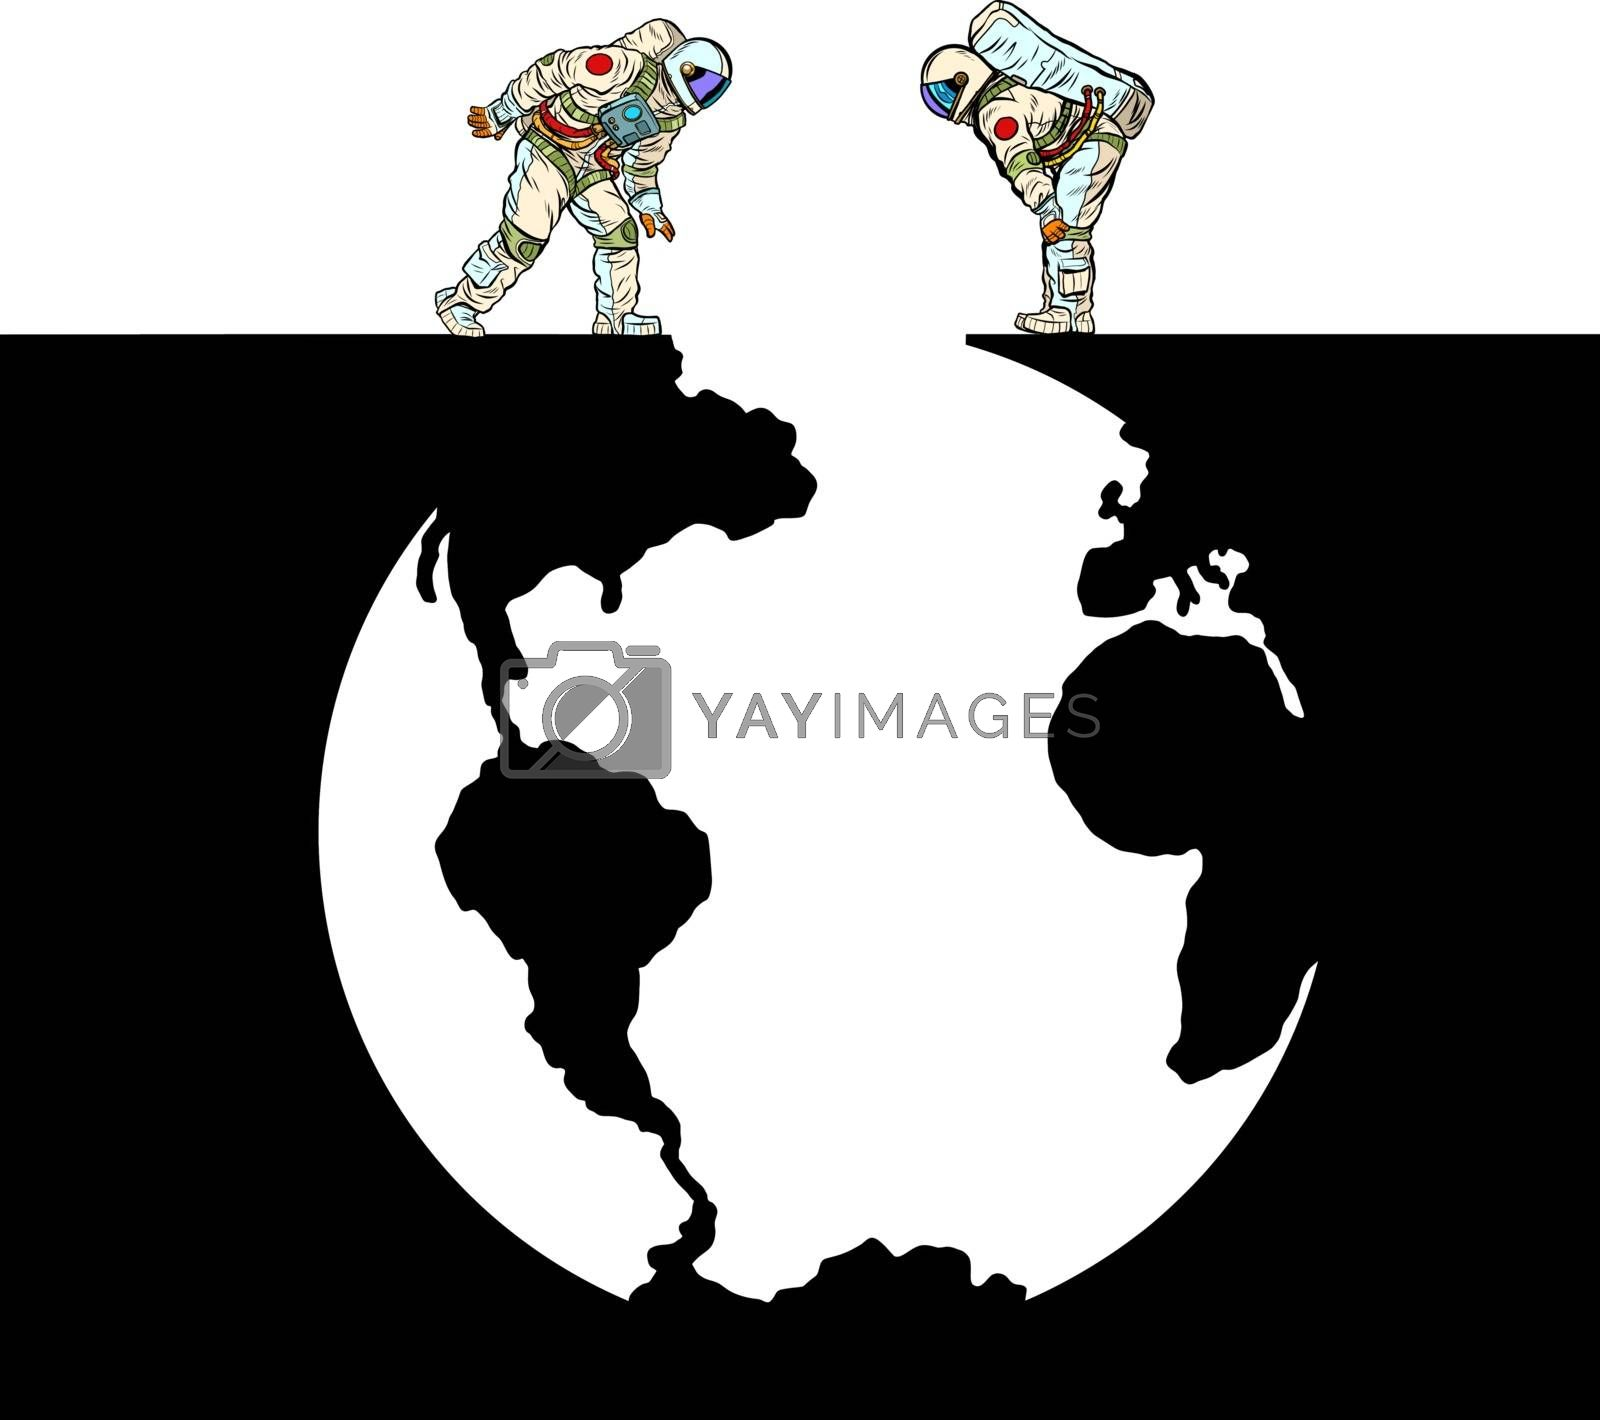 Astronauts and Planet Earth. Pit silhouette. Pop art retro vector illustration 50s 60s style